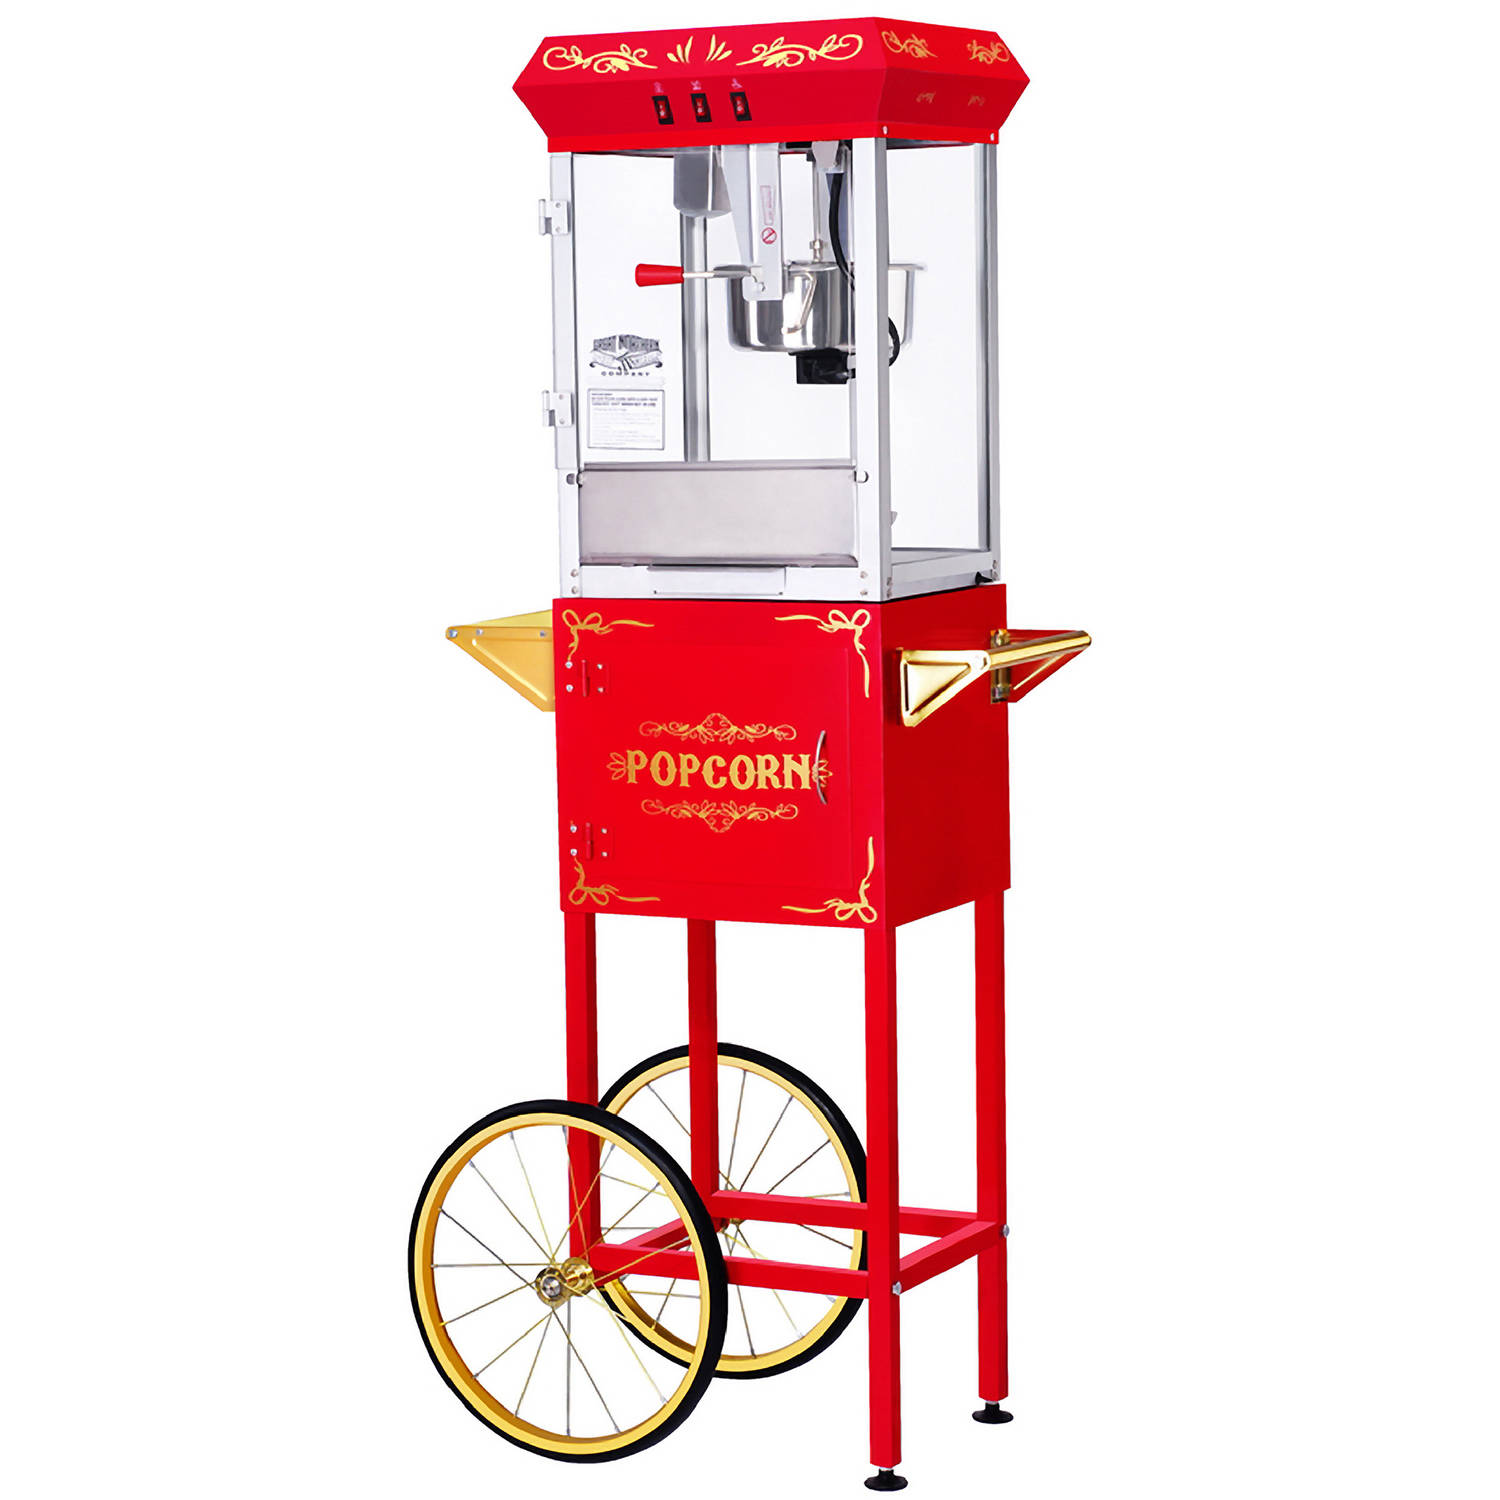 Great Northern Popcorn Red GNP-800 All-Star Popcorn Popper Machine and Cart, 8 Ounce